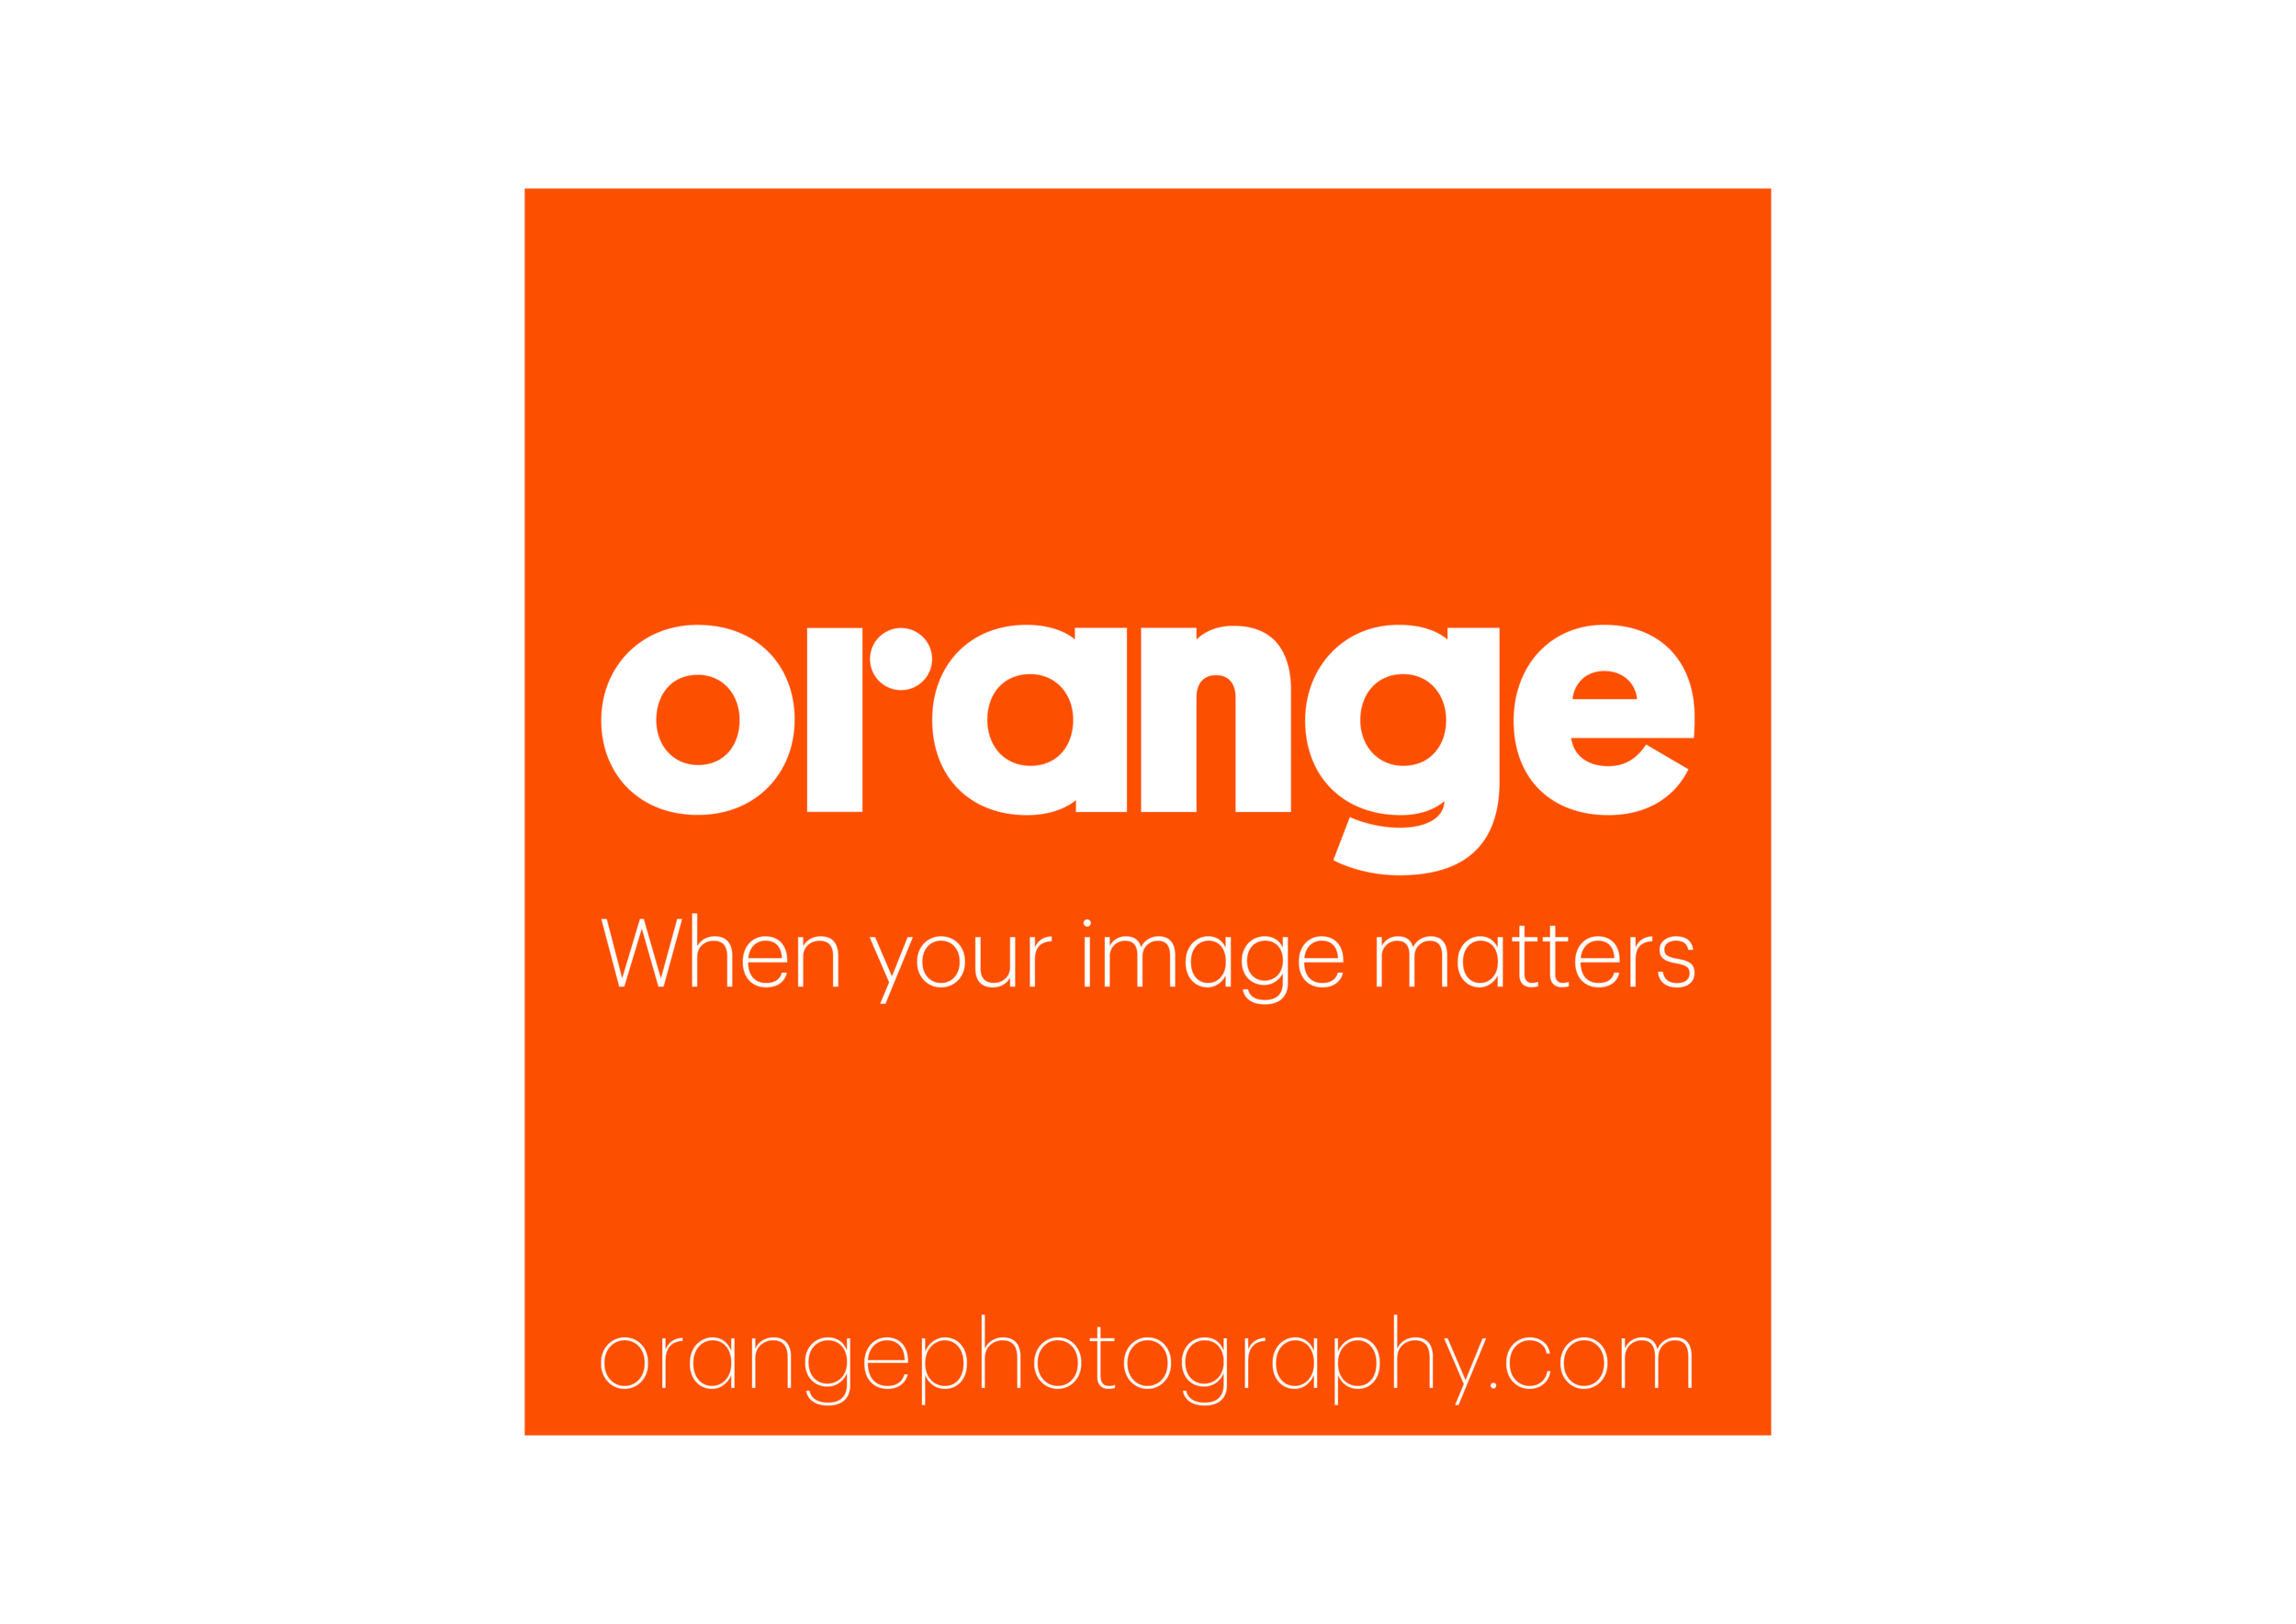 orange_tagline_url_square.png